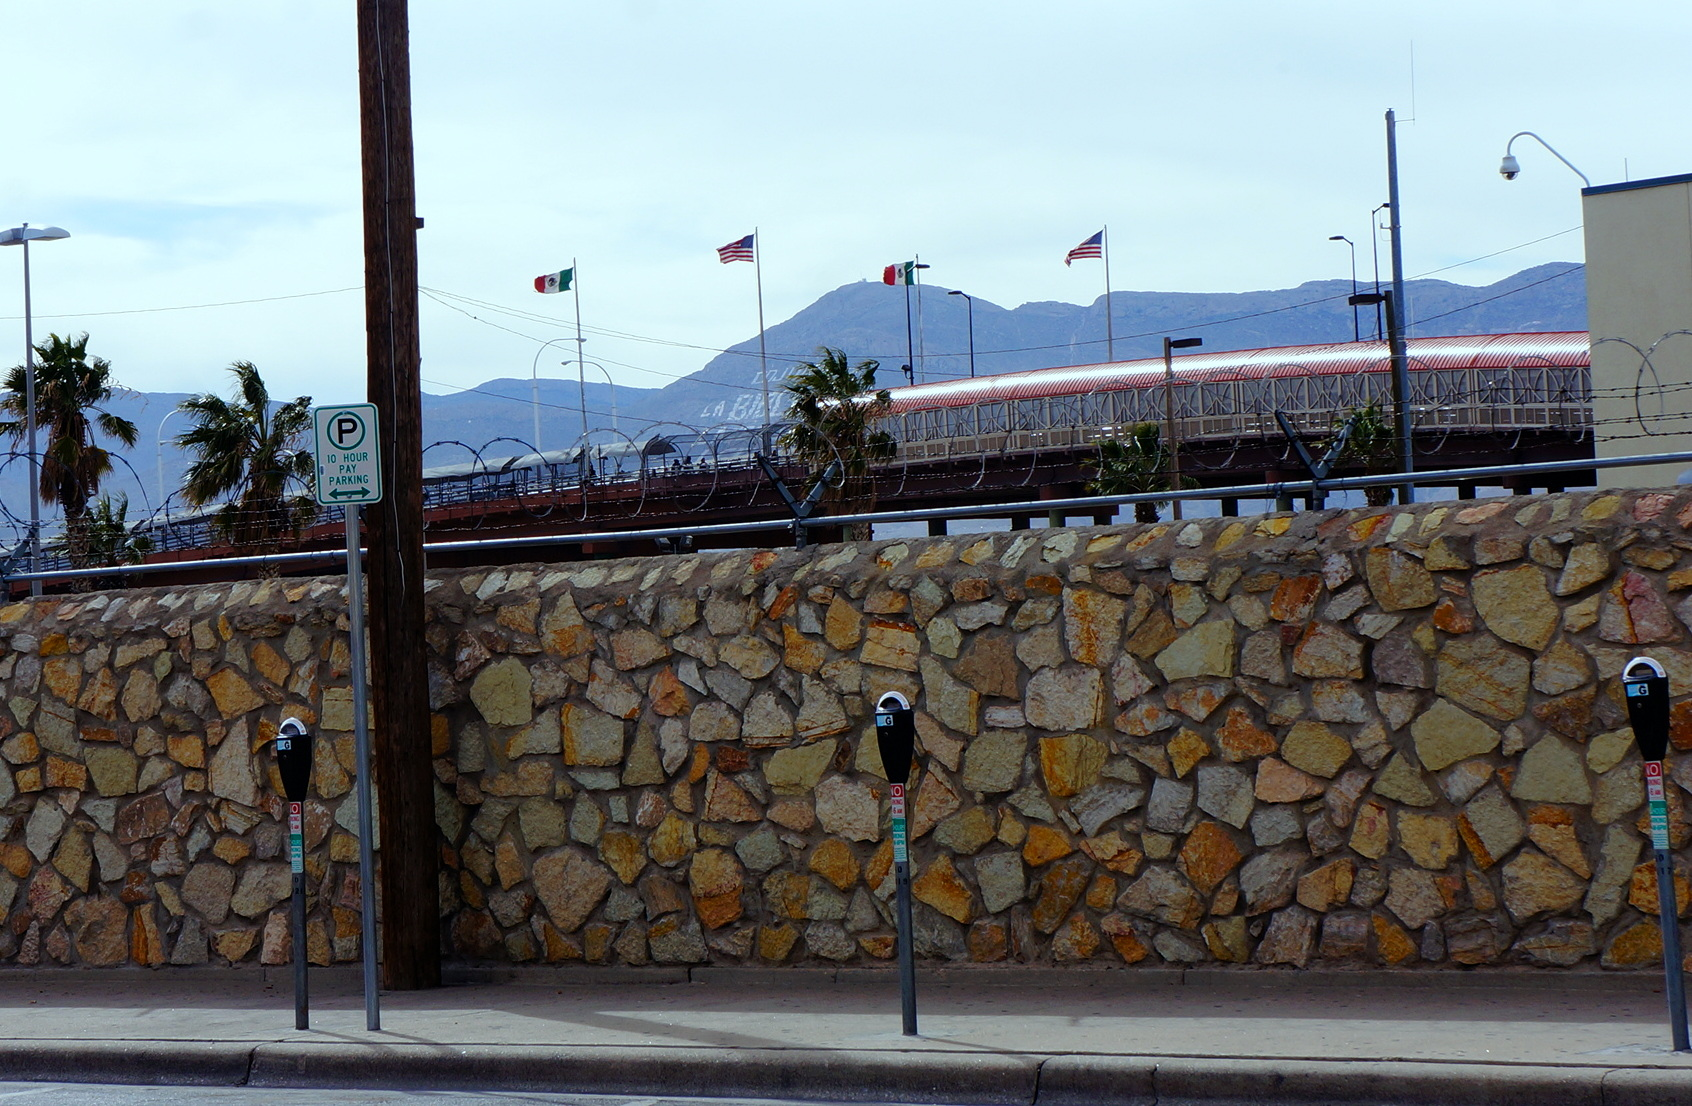 photo essay crossing the el paso juarez border suffragio the paso del norte bridge completed in 1967 is one of four points of entry to juatildeiexclrez from el paso and it features a pedestrian walkway kevin lees